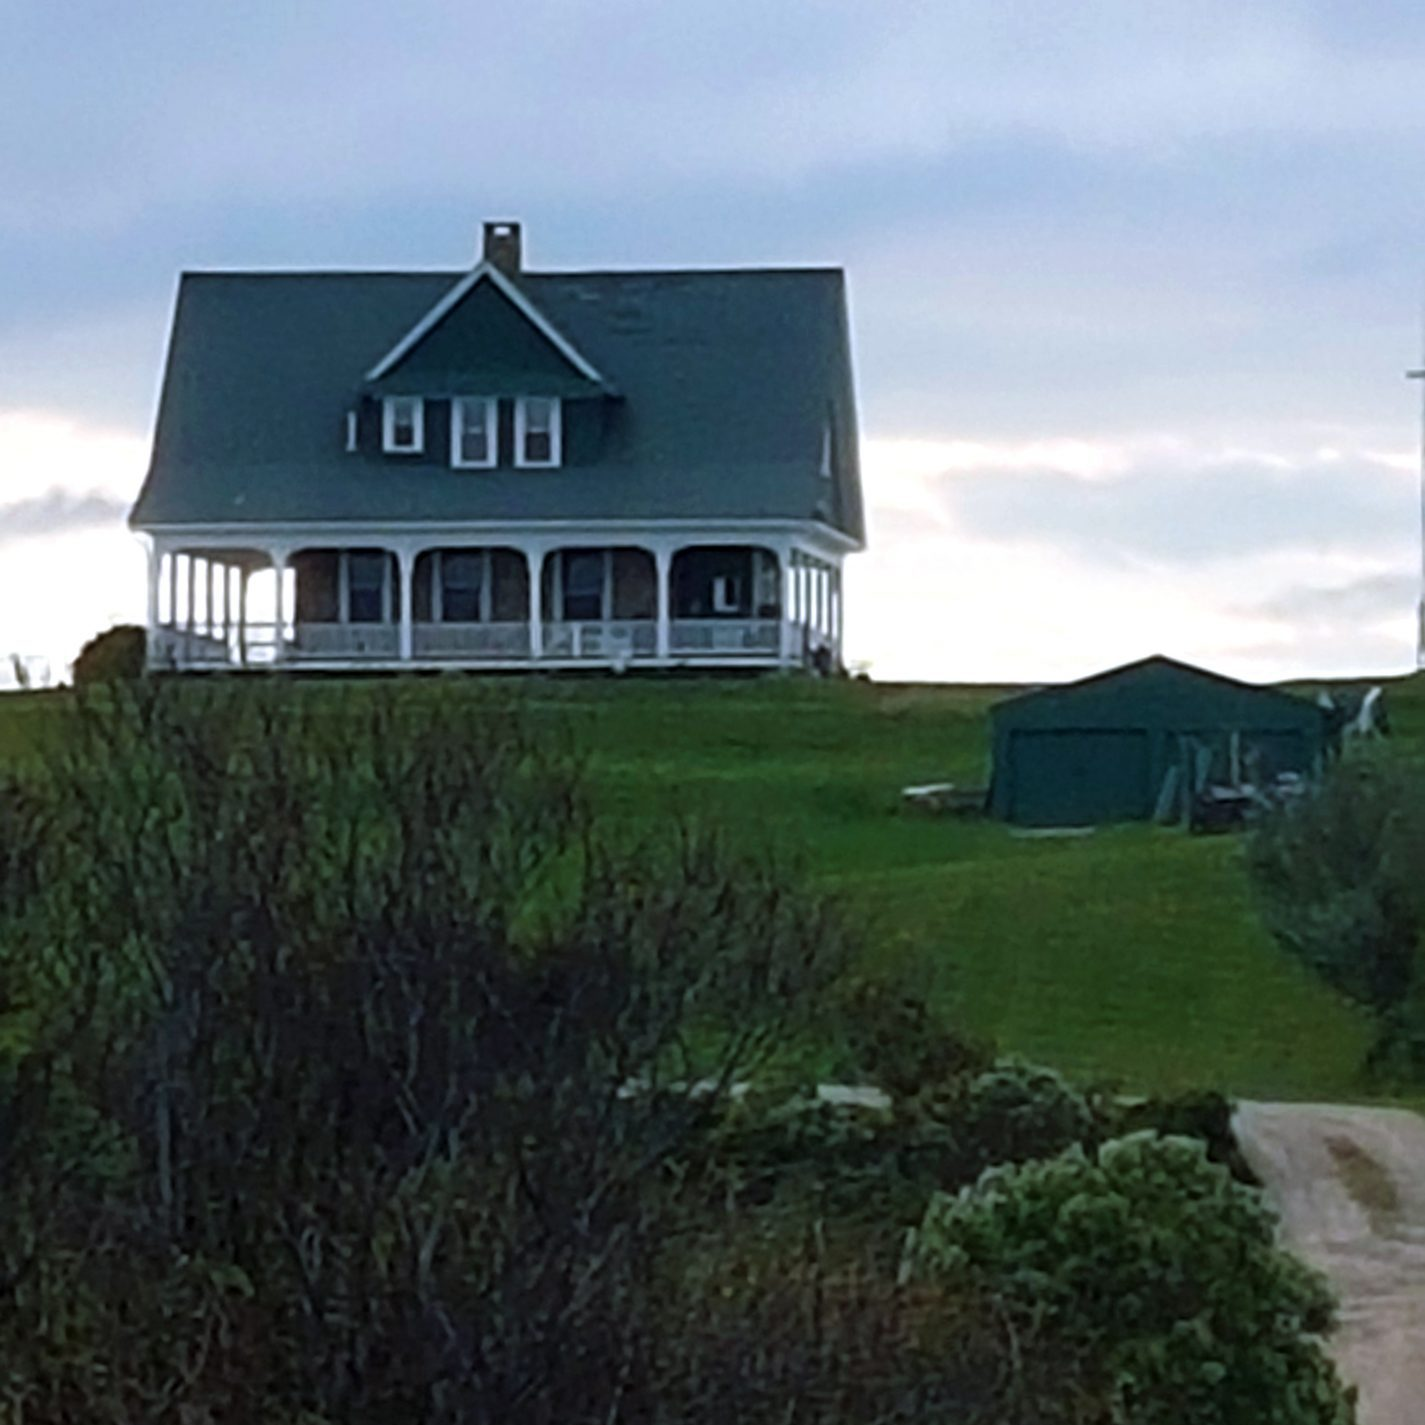 The distinctive architecture of this windswept island, with its emphasis on porches, can be seen in the most modern buildings. Photo courtesy of Dan Drollette Jr.